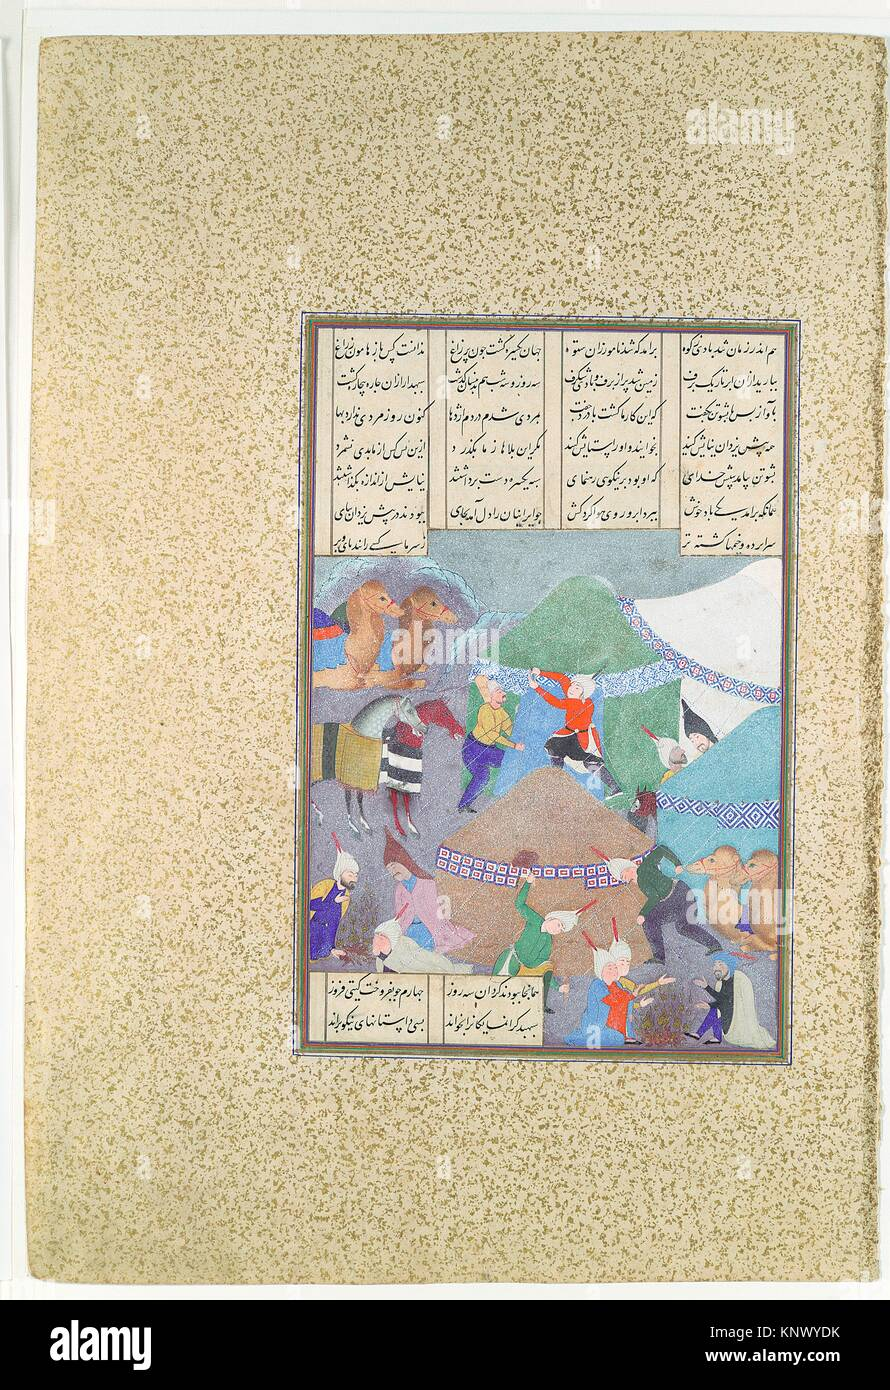 Isfandiyar's Sixth Course: He Comes Through the Snow, Folio 438r from the Shahnama (Book of Kings) of Shah Tahmasp. - Stock Image